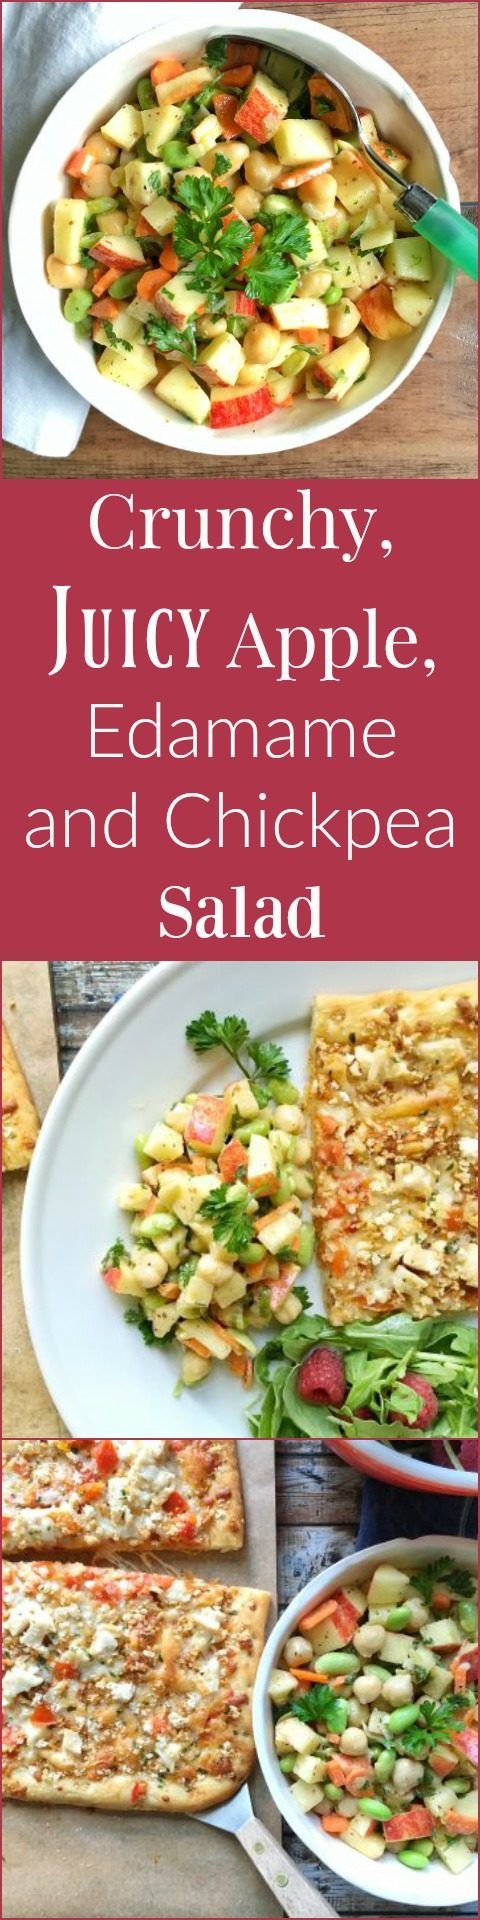 Crunchy, Juicy Apple, Edamame and Chickpea Salad via LizsHealthyTable.com